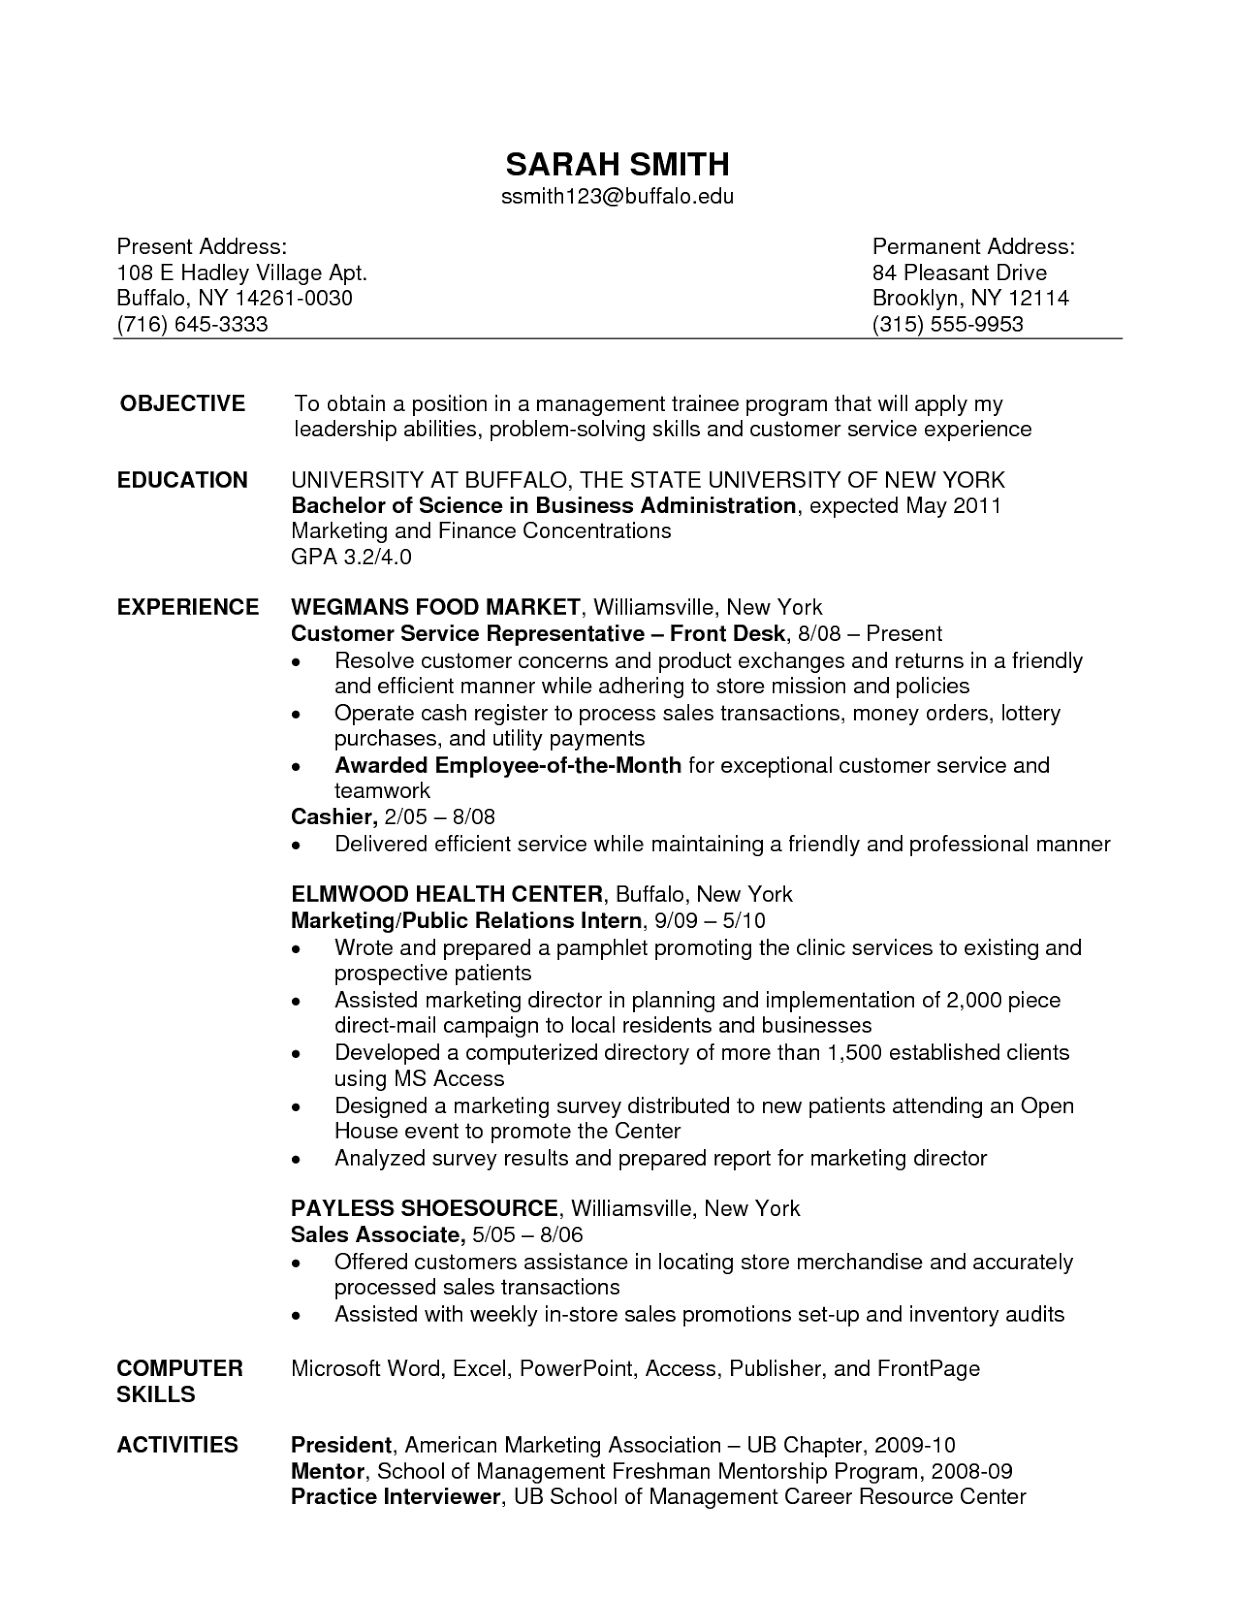 Resume Objective Examples In 2021 Resume Objective Examples Sales Resume Examples Resume Examples